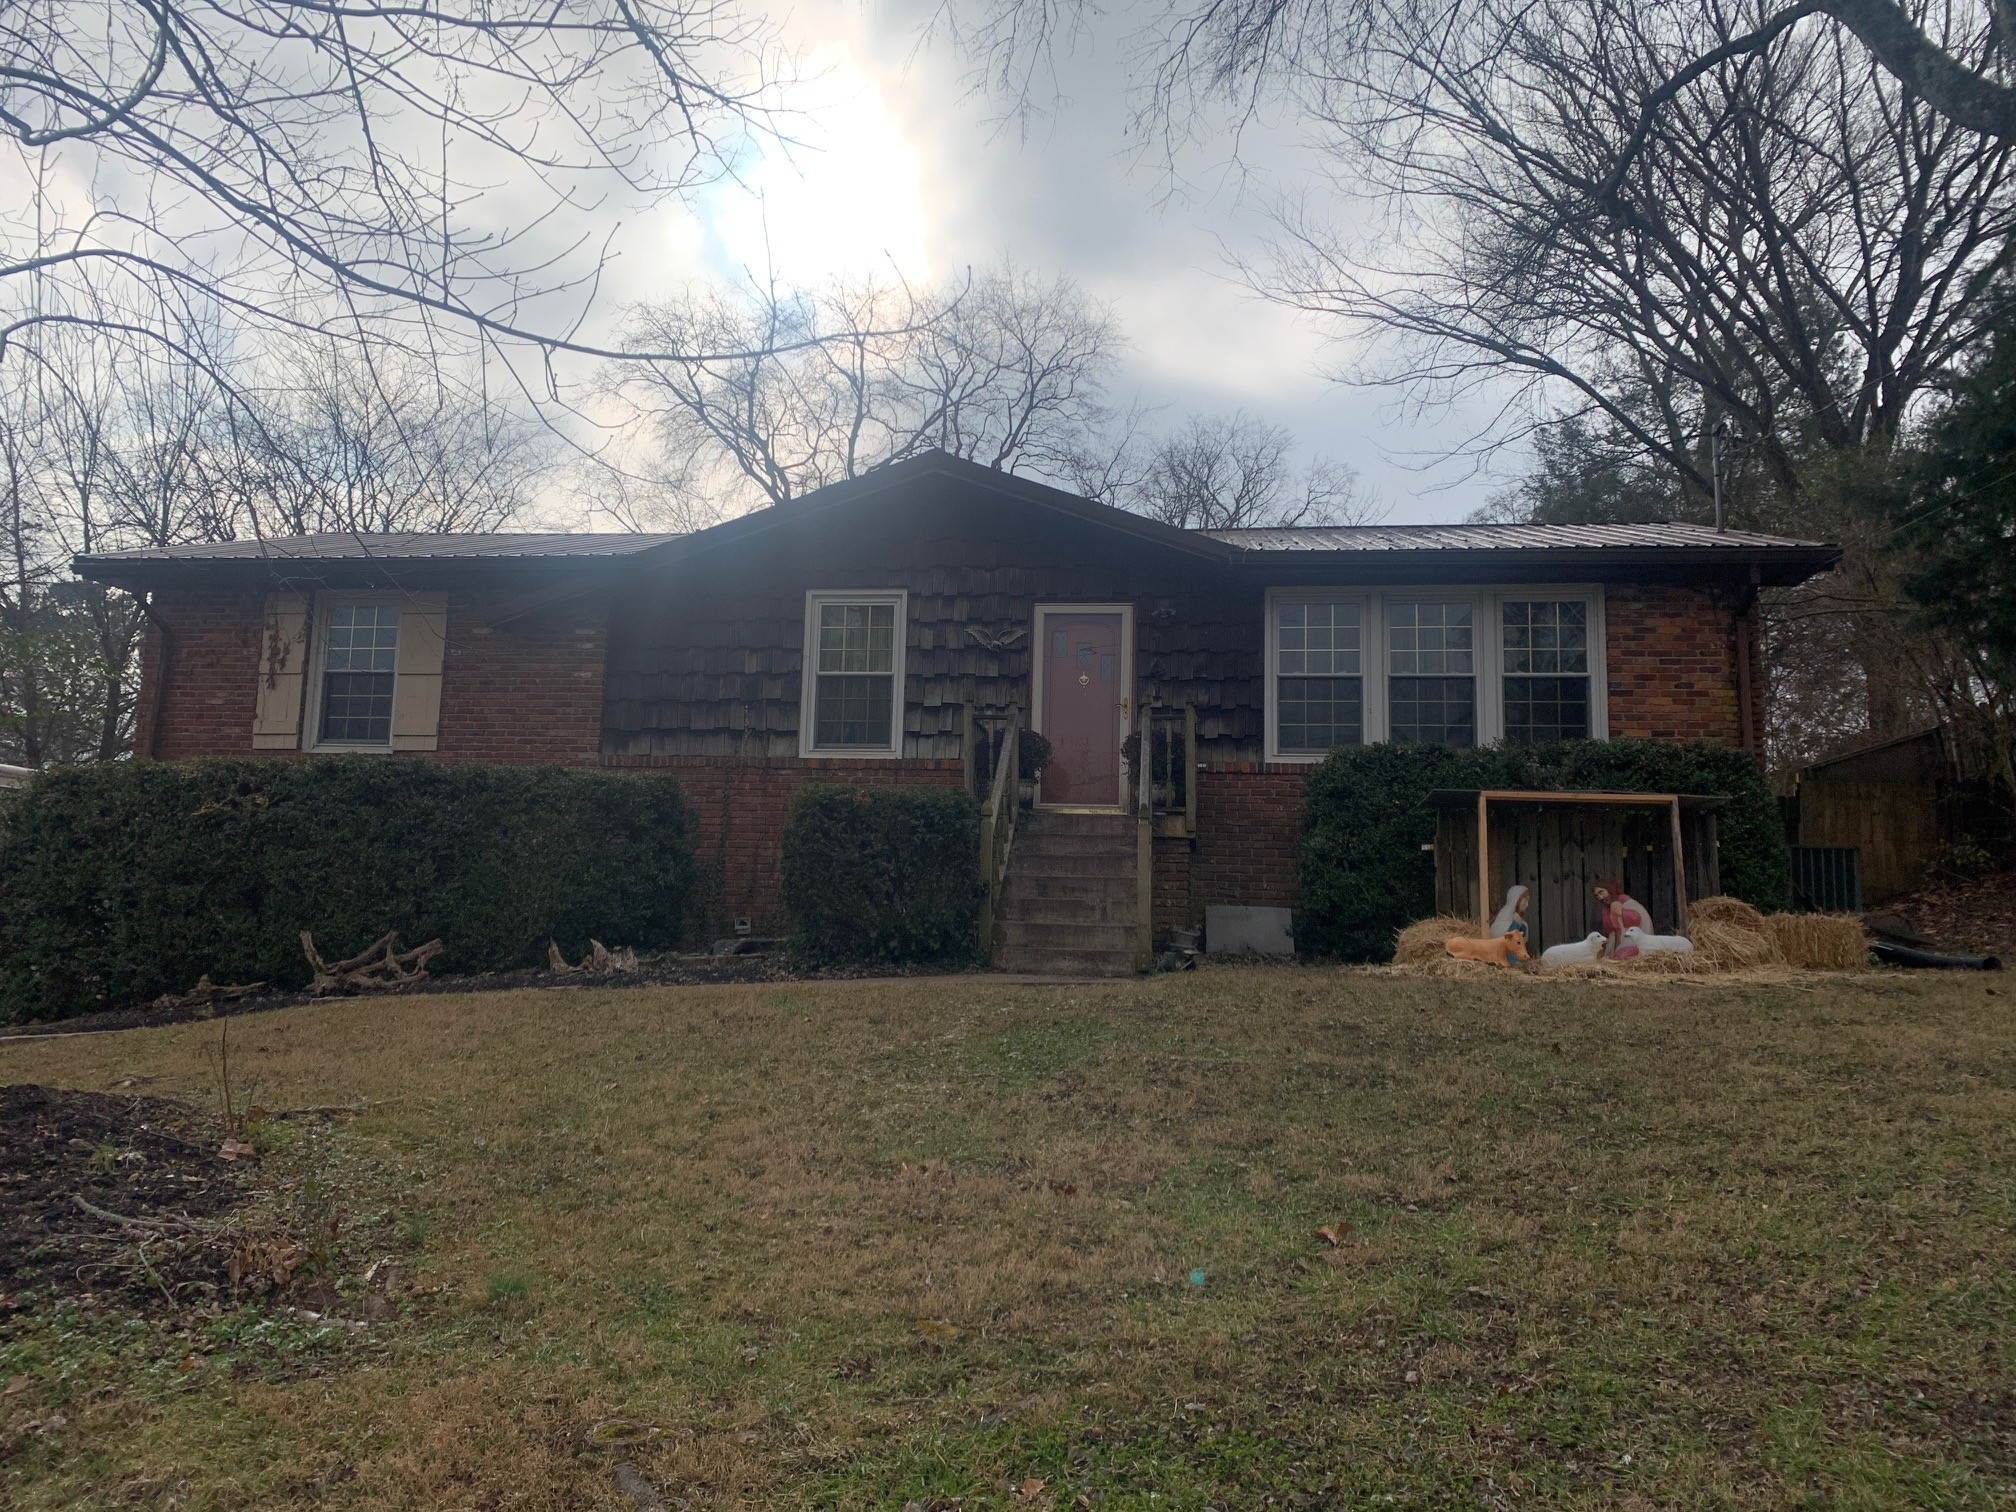 House is located in a great area near Old Hickory Lake. All brick, full finished basement, fenced backyard, hardwood floors on main level. Home has lots of potential.